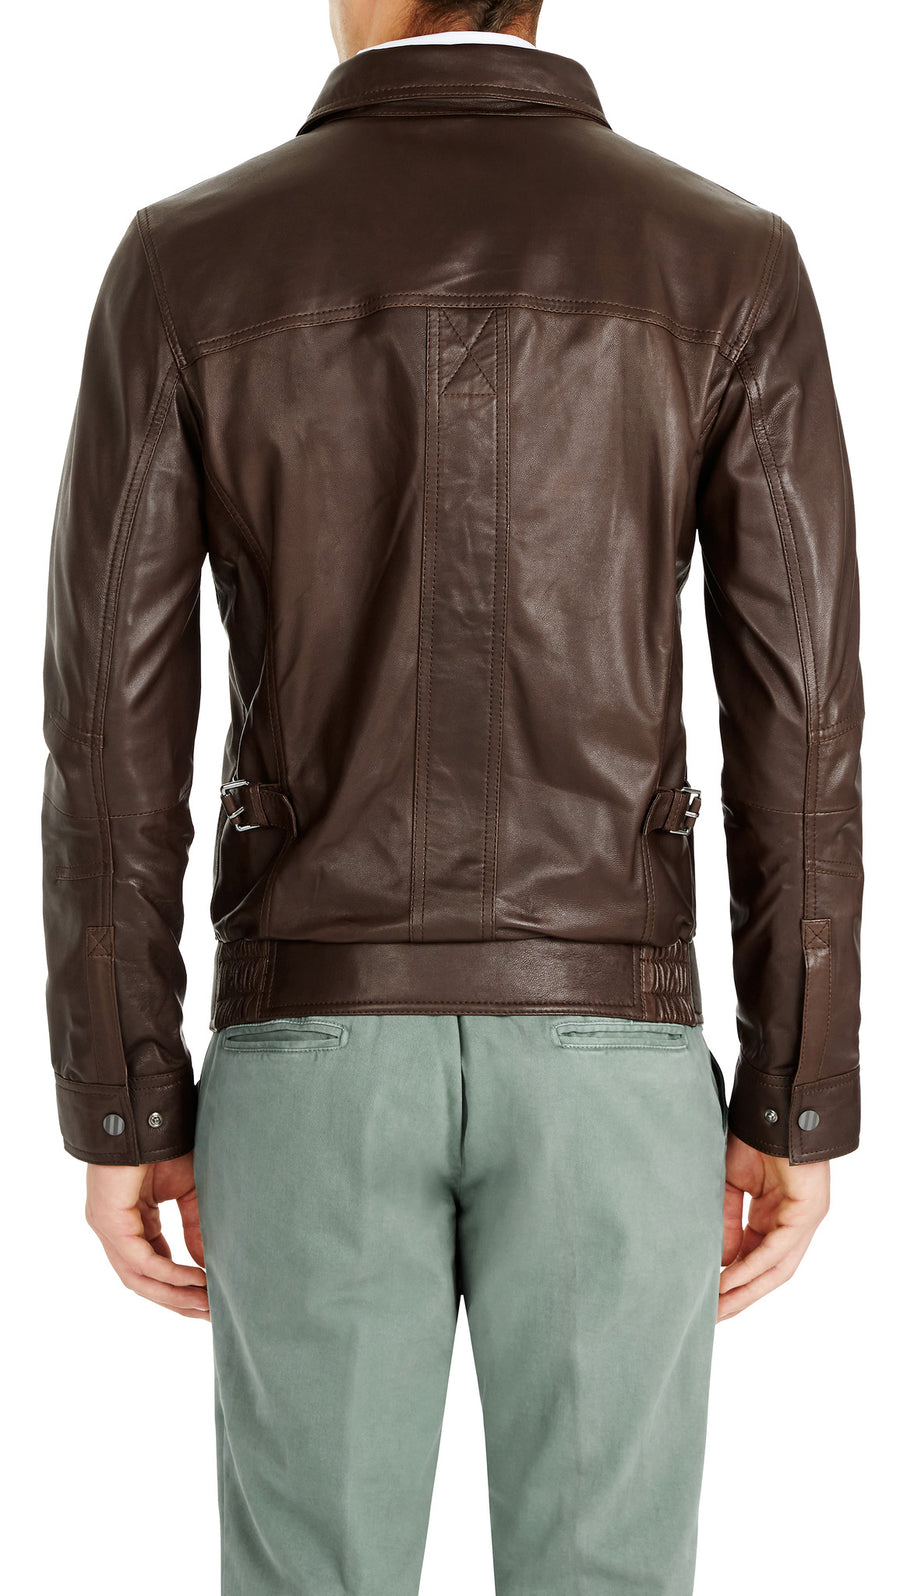 Bennett Leather Bomber Jacket in Dark Brown - Ron Bennett Menswear  - 1